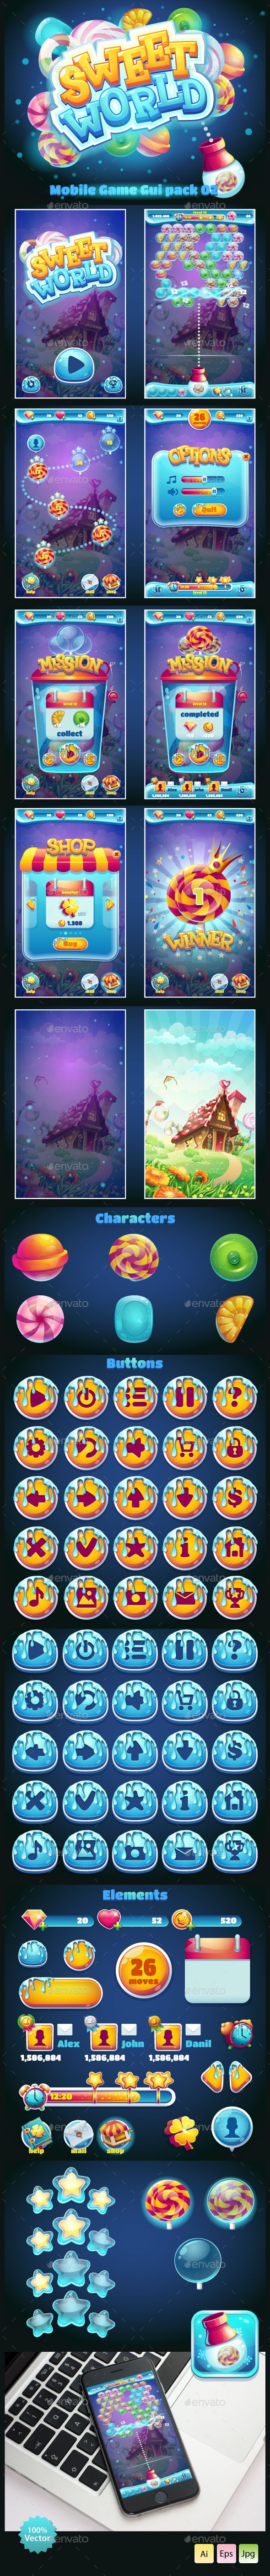 Sweet world candy shooter mobile GUI Template Vector EPS, AI Illustrator. Download here: http://graphicriver.net/item/sweet-world-candy-shooter-mobile-gui-/14873629?ref=ksioks